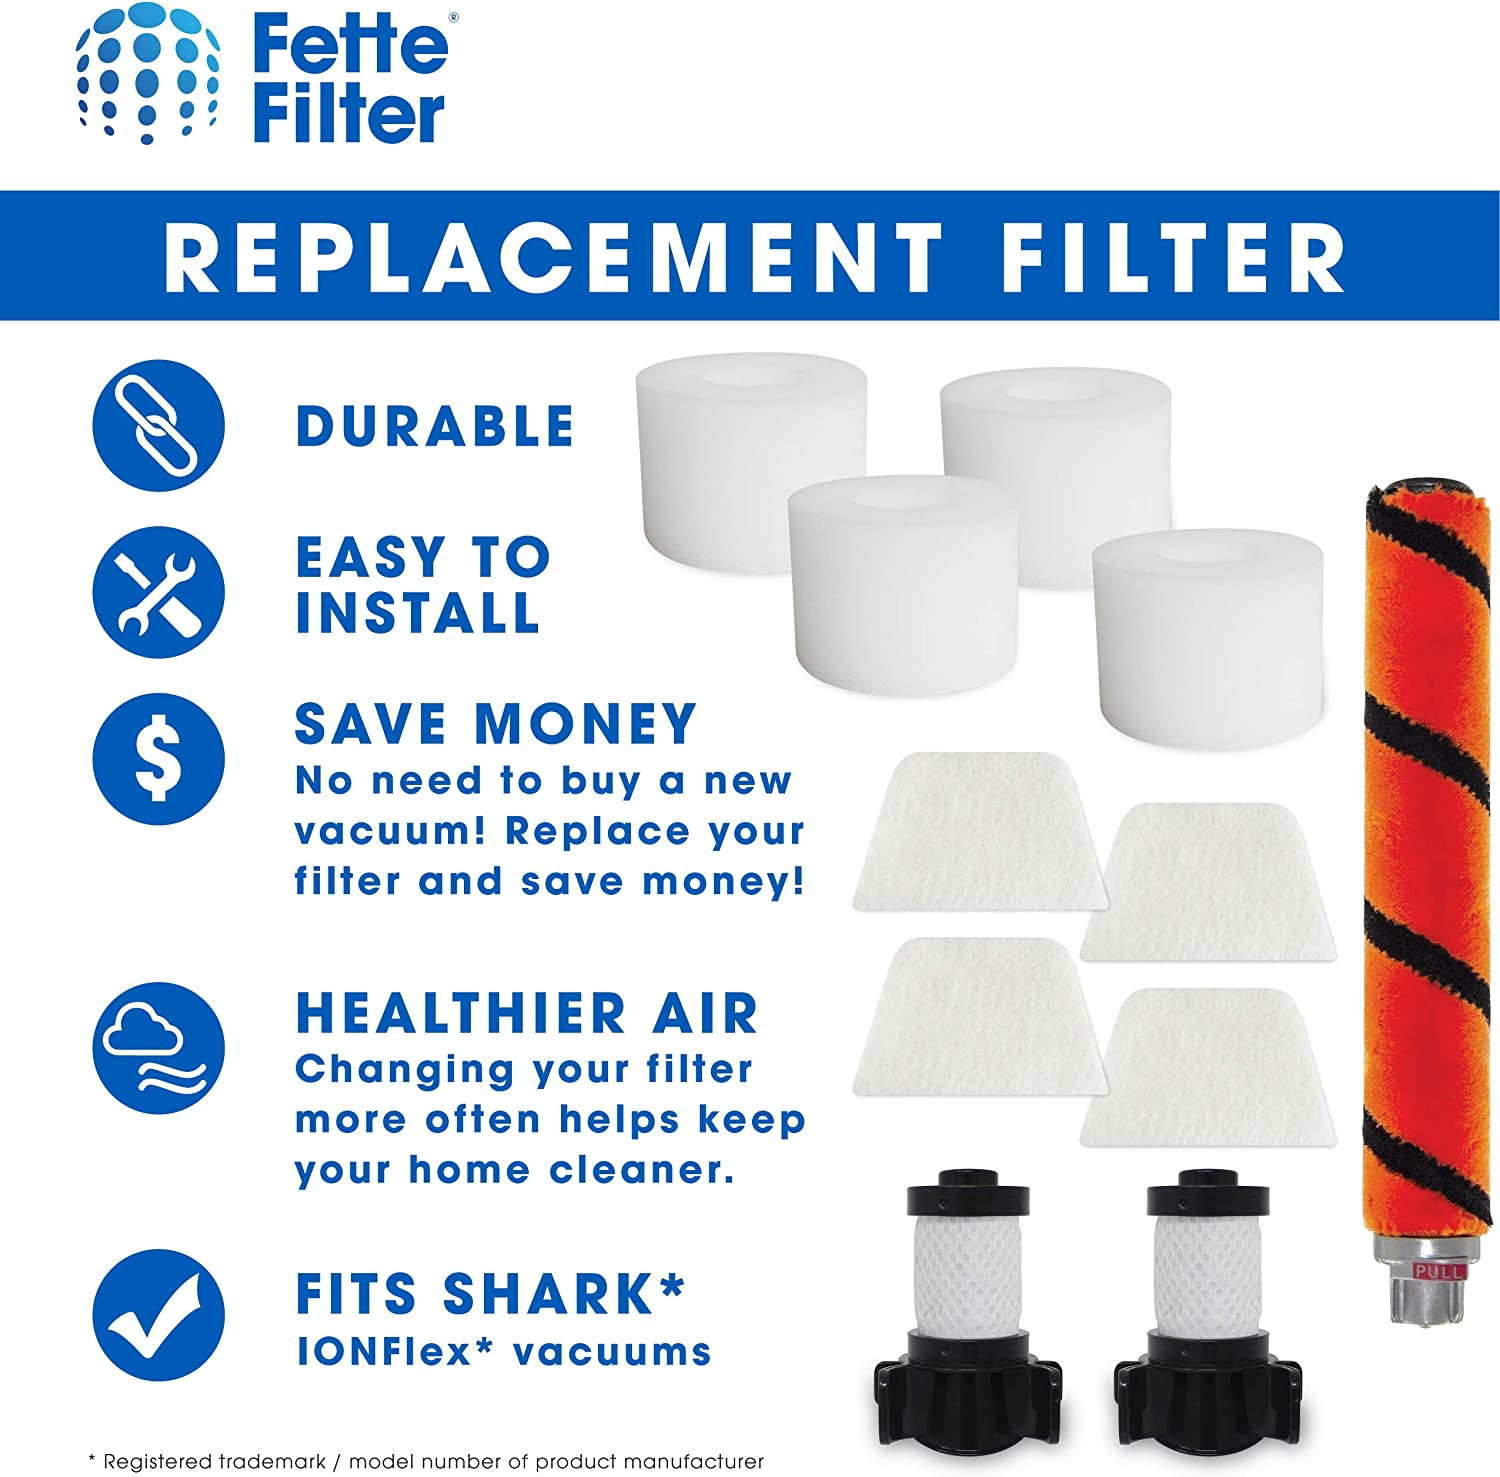 Fette Filter Replacement Kit Compatible with Select Shark ION Flex DuoClean Combo Pack - 1 Soft Brush Roll, 2 Foam /& Felt Filter Kit, 2 Post-Motor Filter